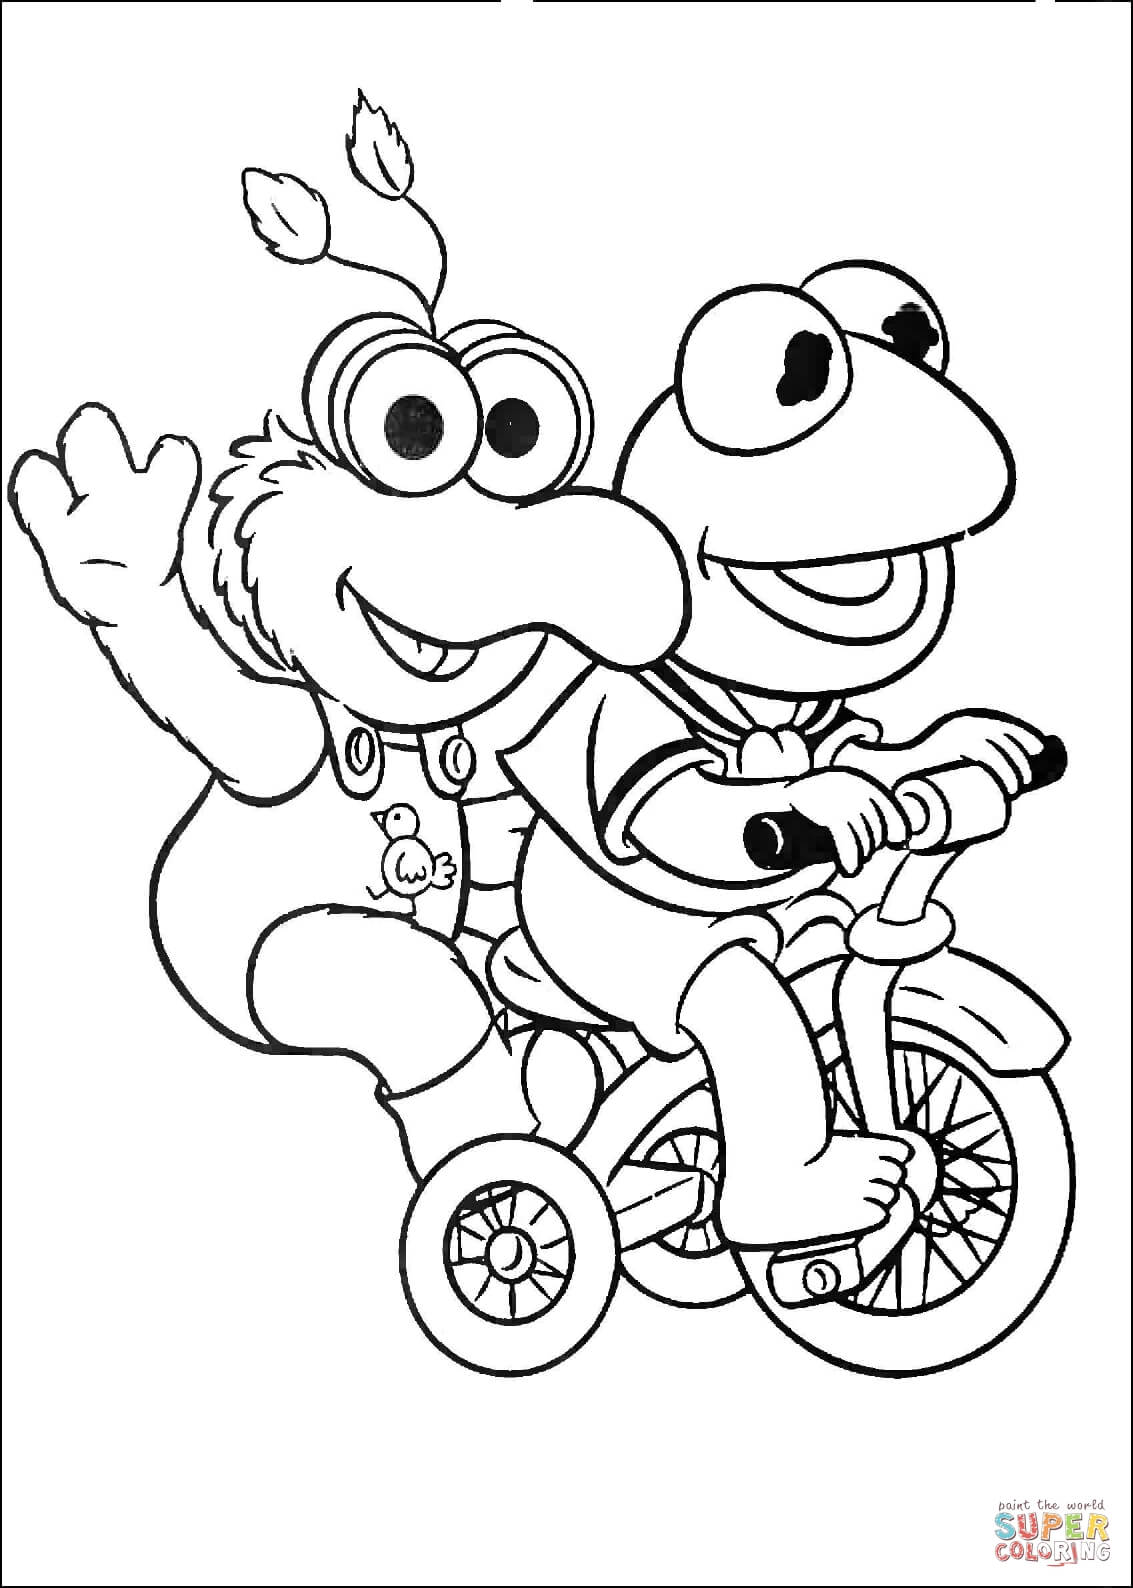 Baby Elmo Drawing at GetDrawings.com | Free for personal use Baby ...